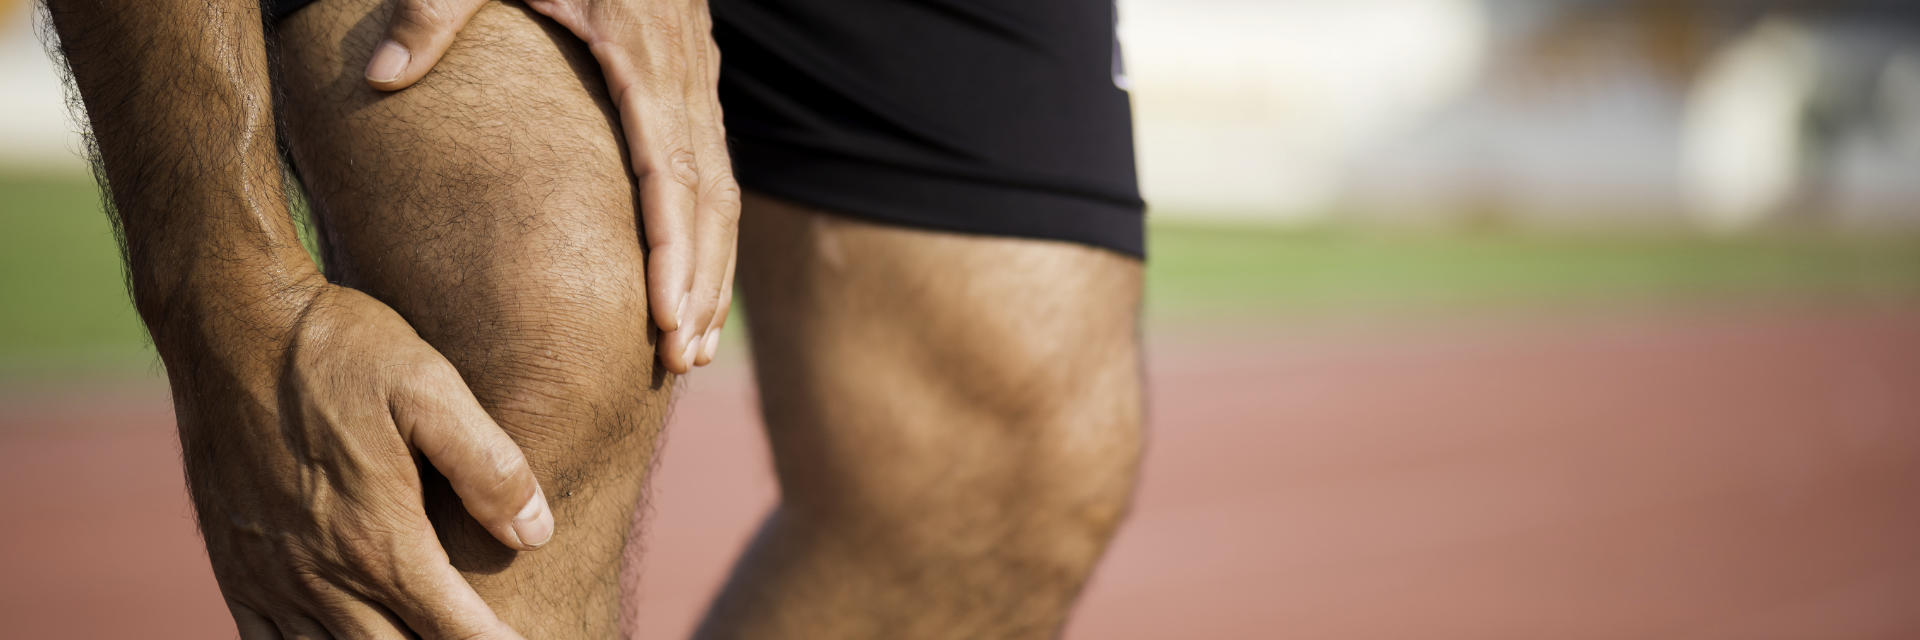 A sportsman touching the painful knee area.